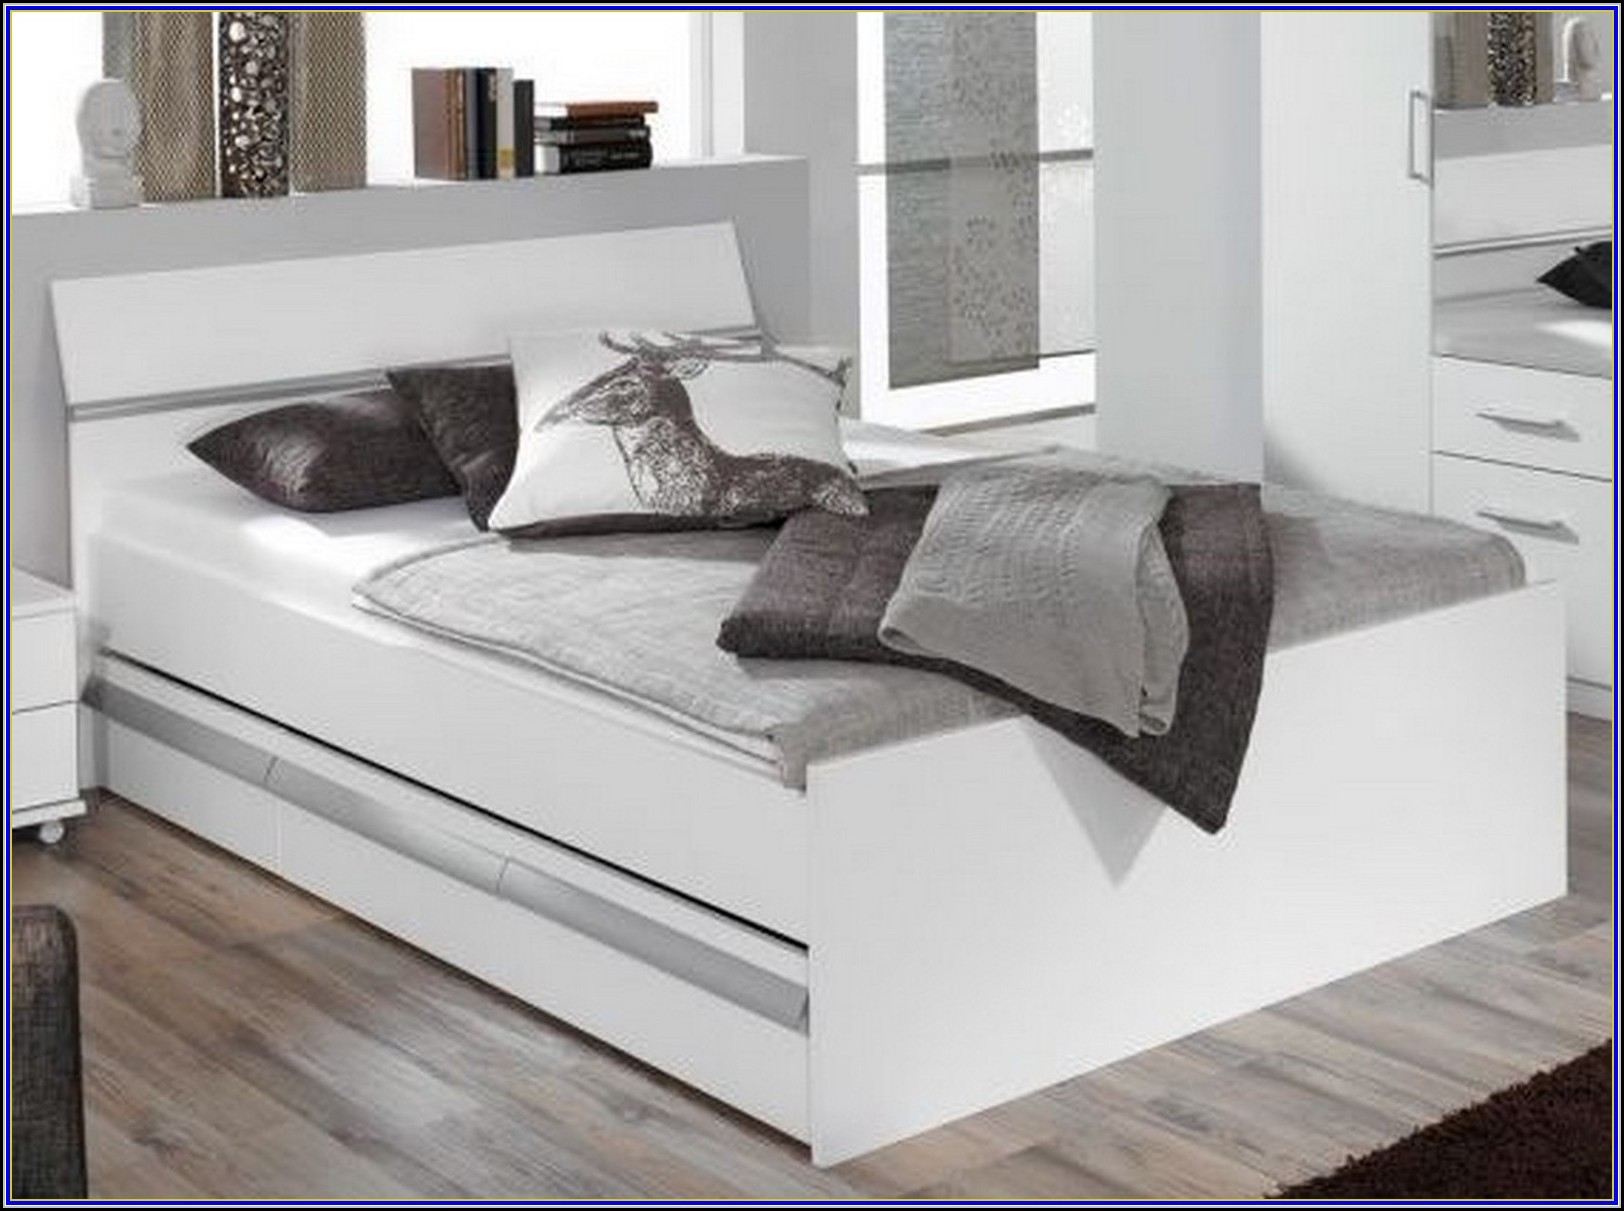 ikea malm bett weiss 140 betten house und dekor galerie zk135gmkdg. Black Bedroom Furniture Sets. Home Design Ideas